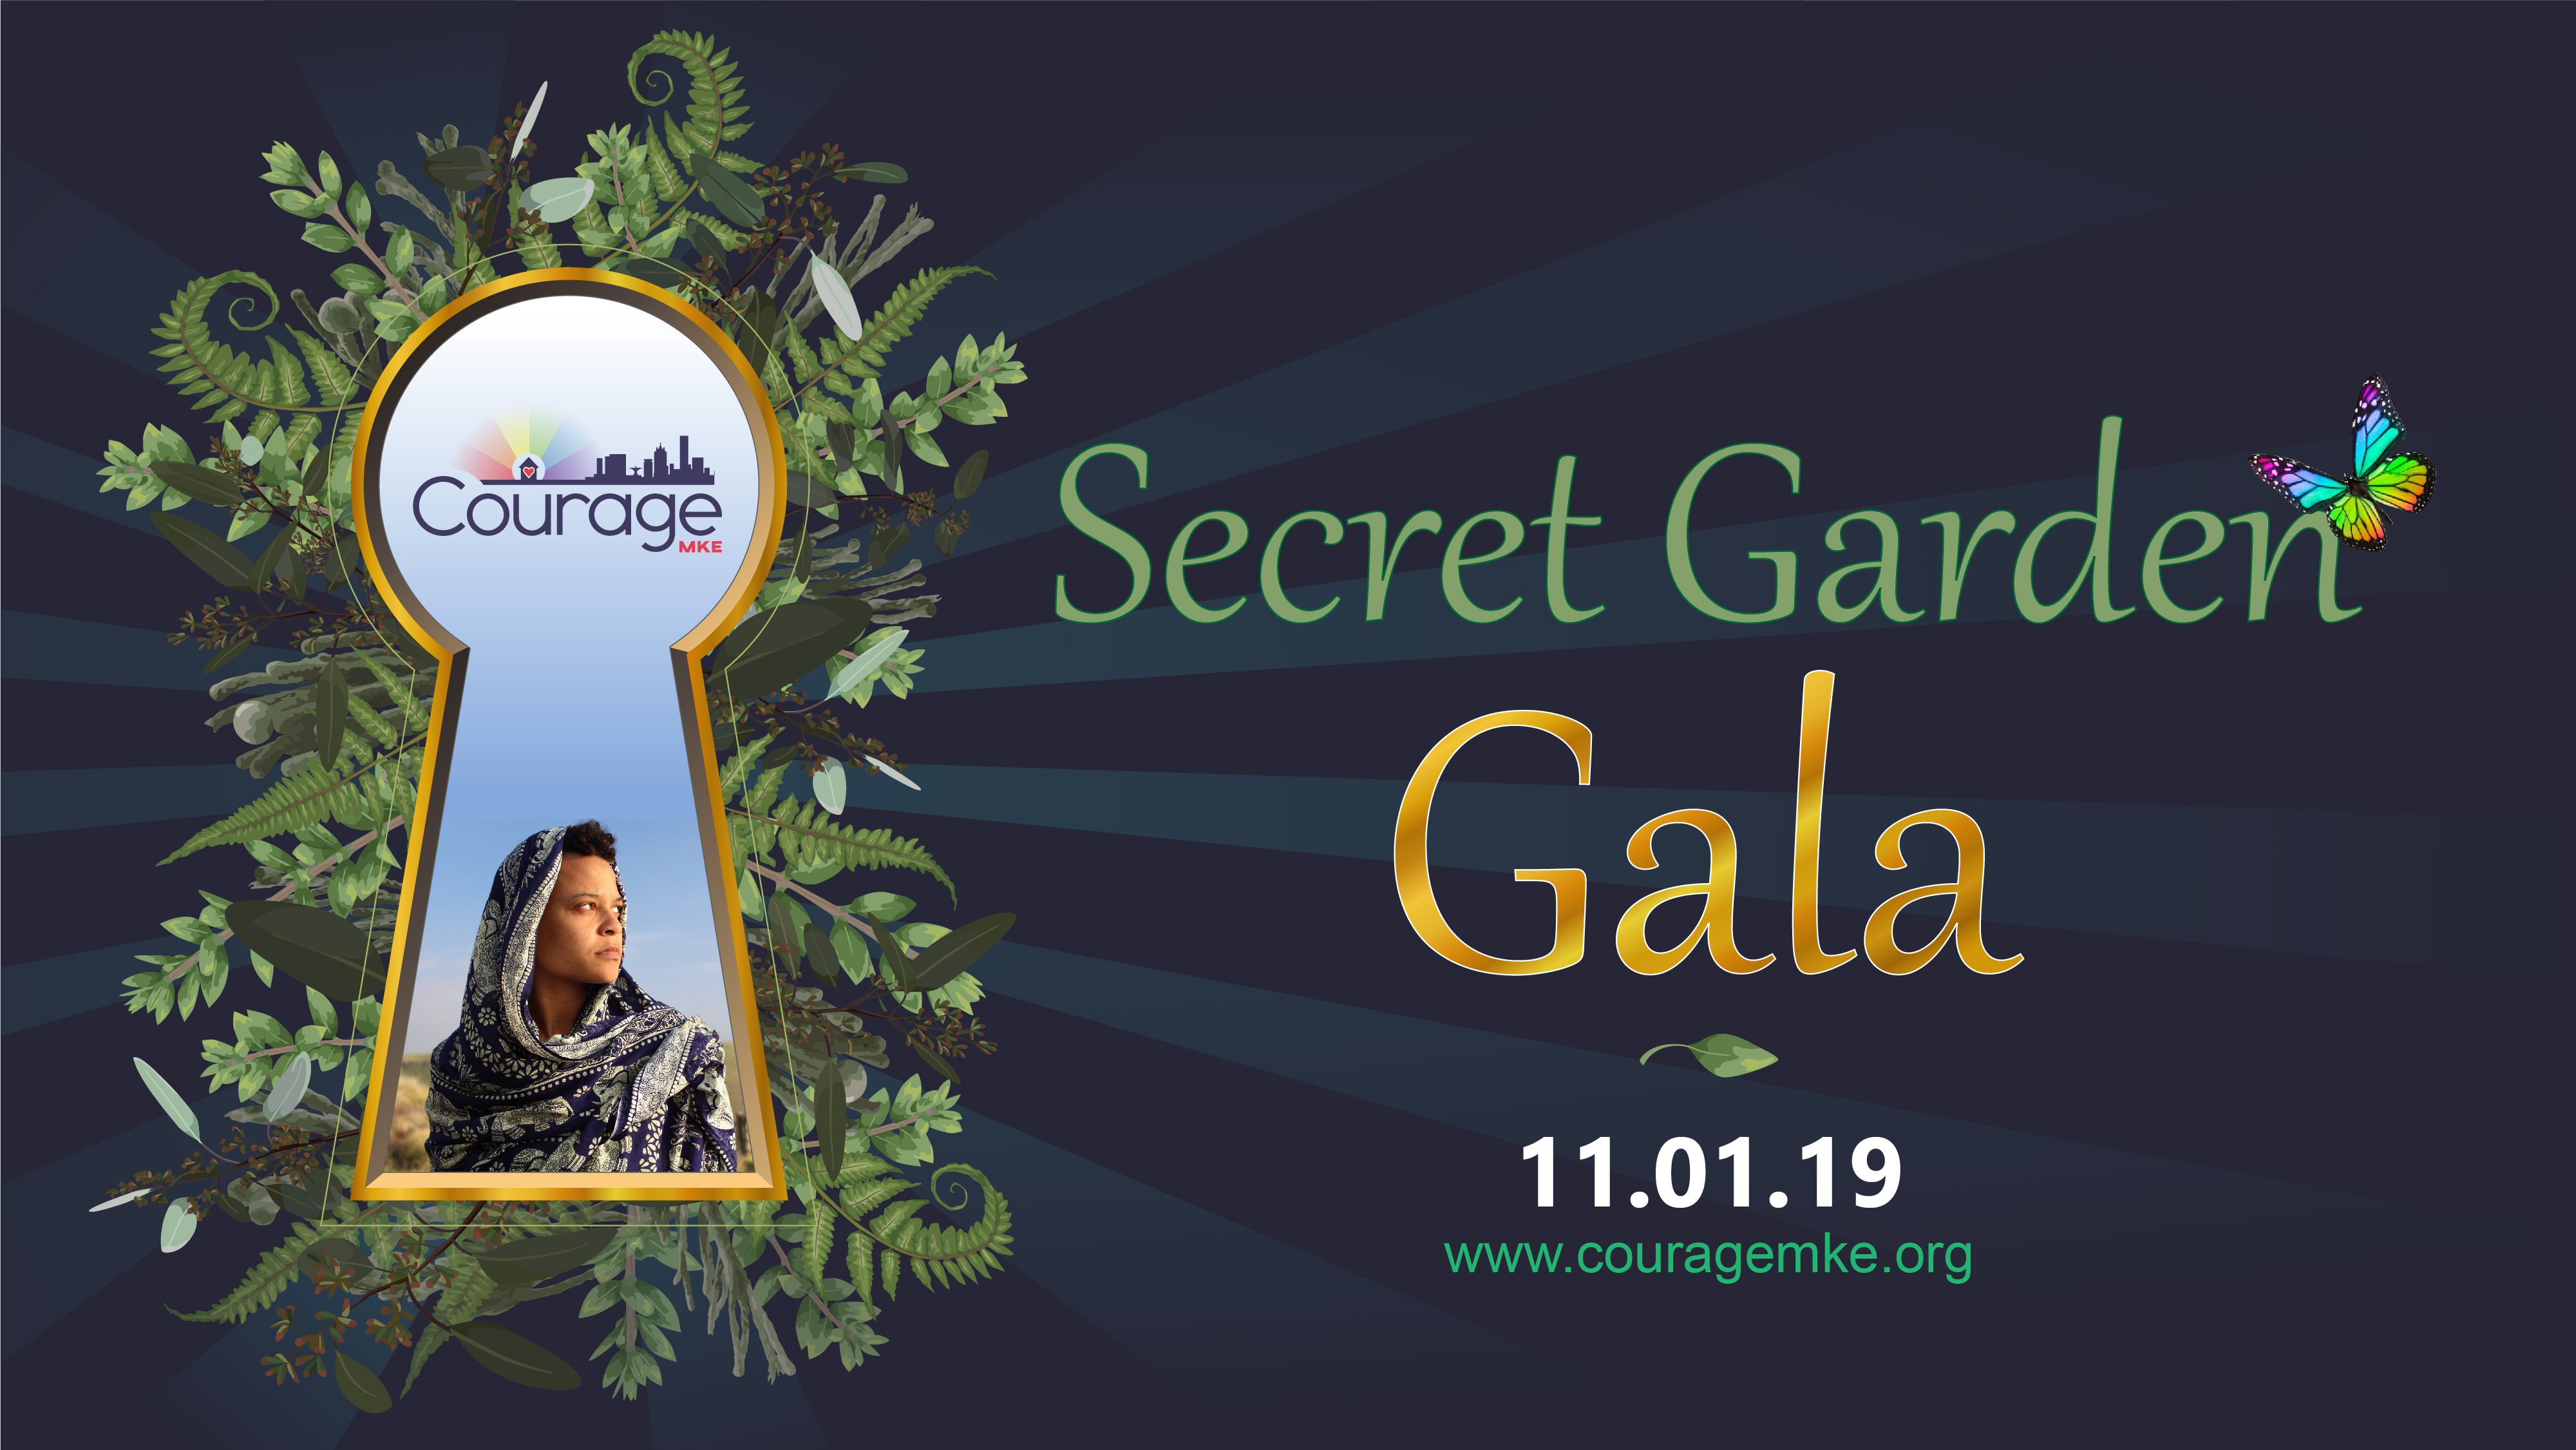 Courage Mke S 2019 Gala The Secret Garden Tickets The Pritzlaff